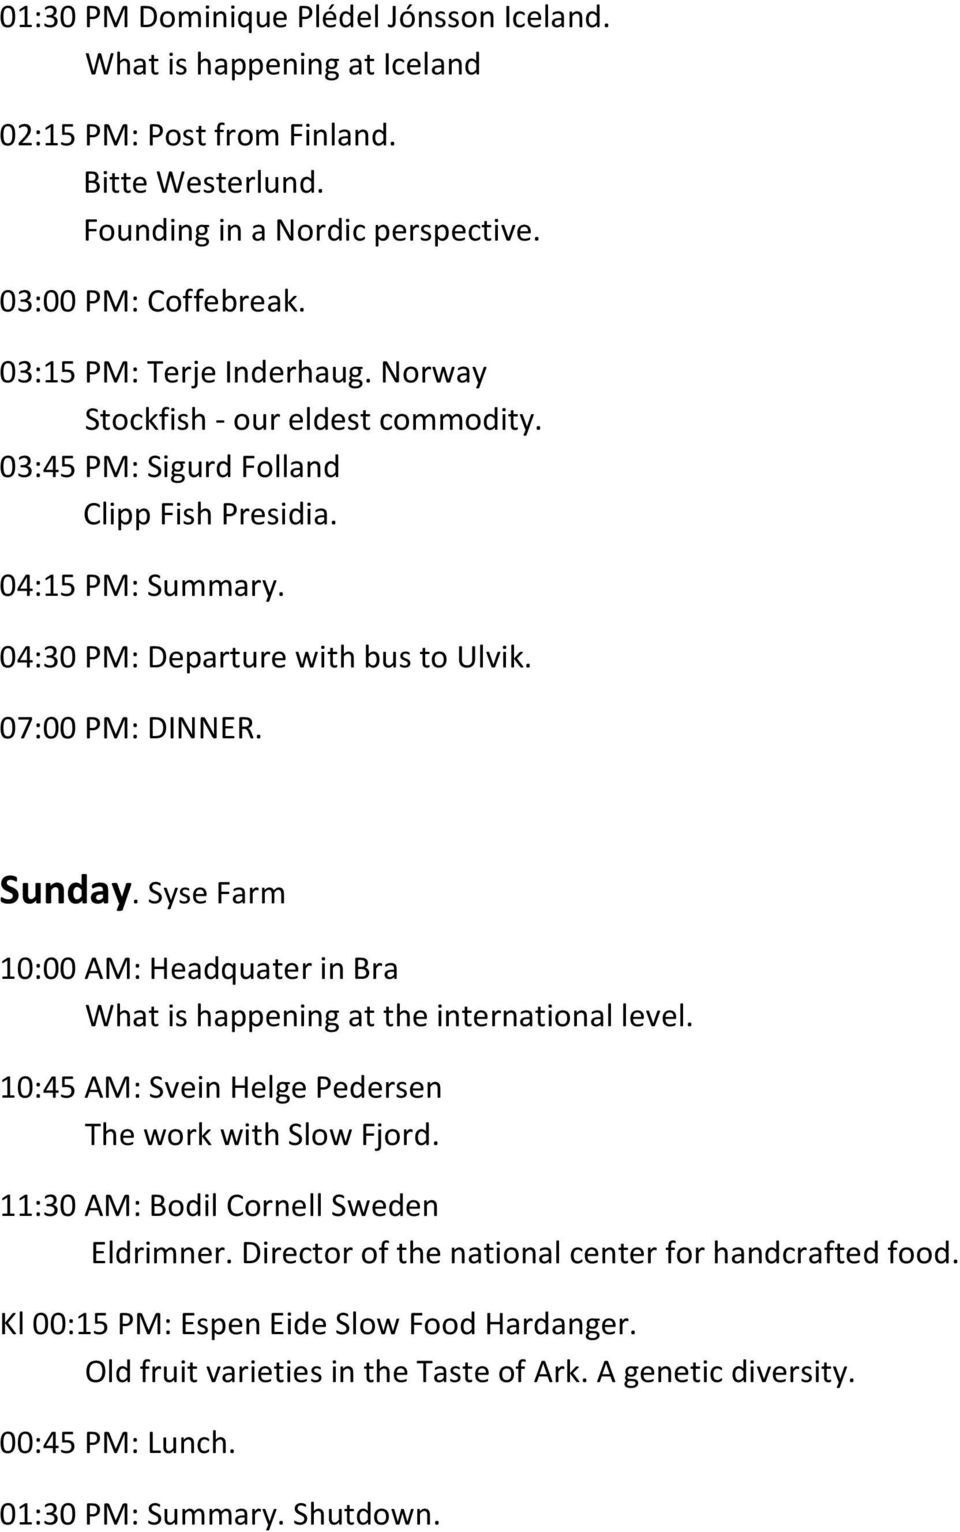 Sunday. Syse Farm 10:00 AM: Headquater in Bra What is happening at the international level. 10:45 AM: Svein Helge Pedersen The work with Slow Fjord. 11:30 AM: Bodil Cornell Sweden Eldrimner.